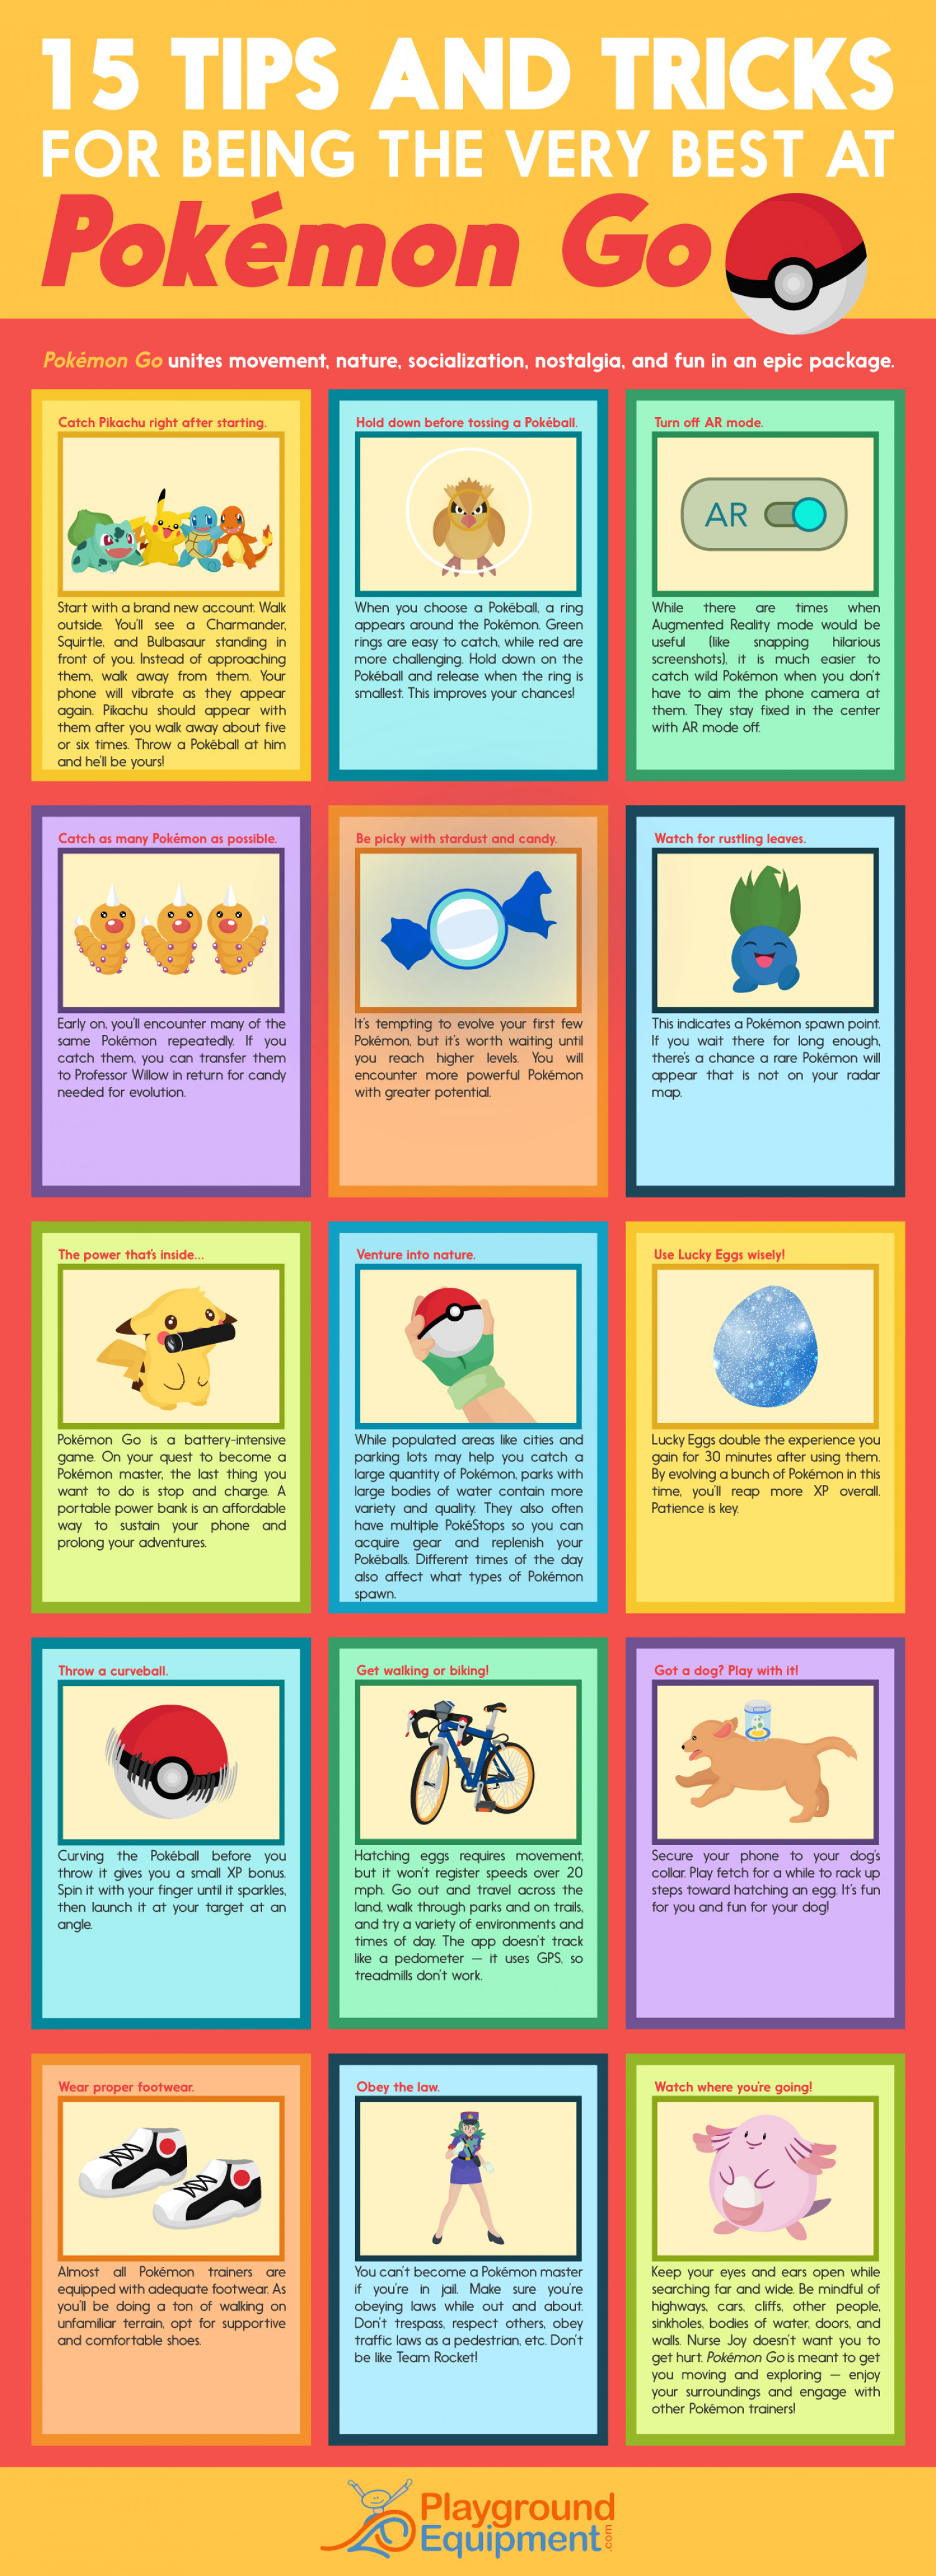 15 Tips and Tricks for Being the Very Best at Pokémon Go Infographic